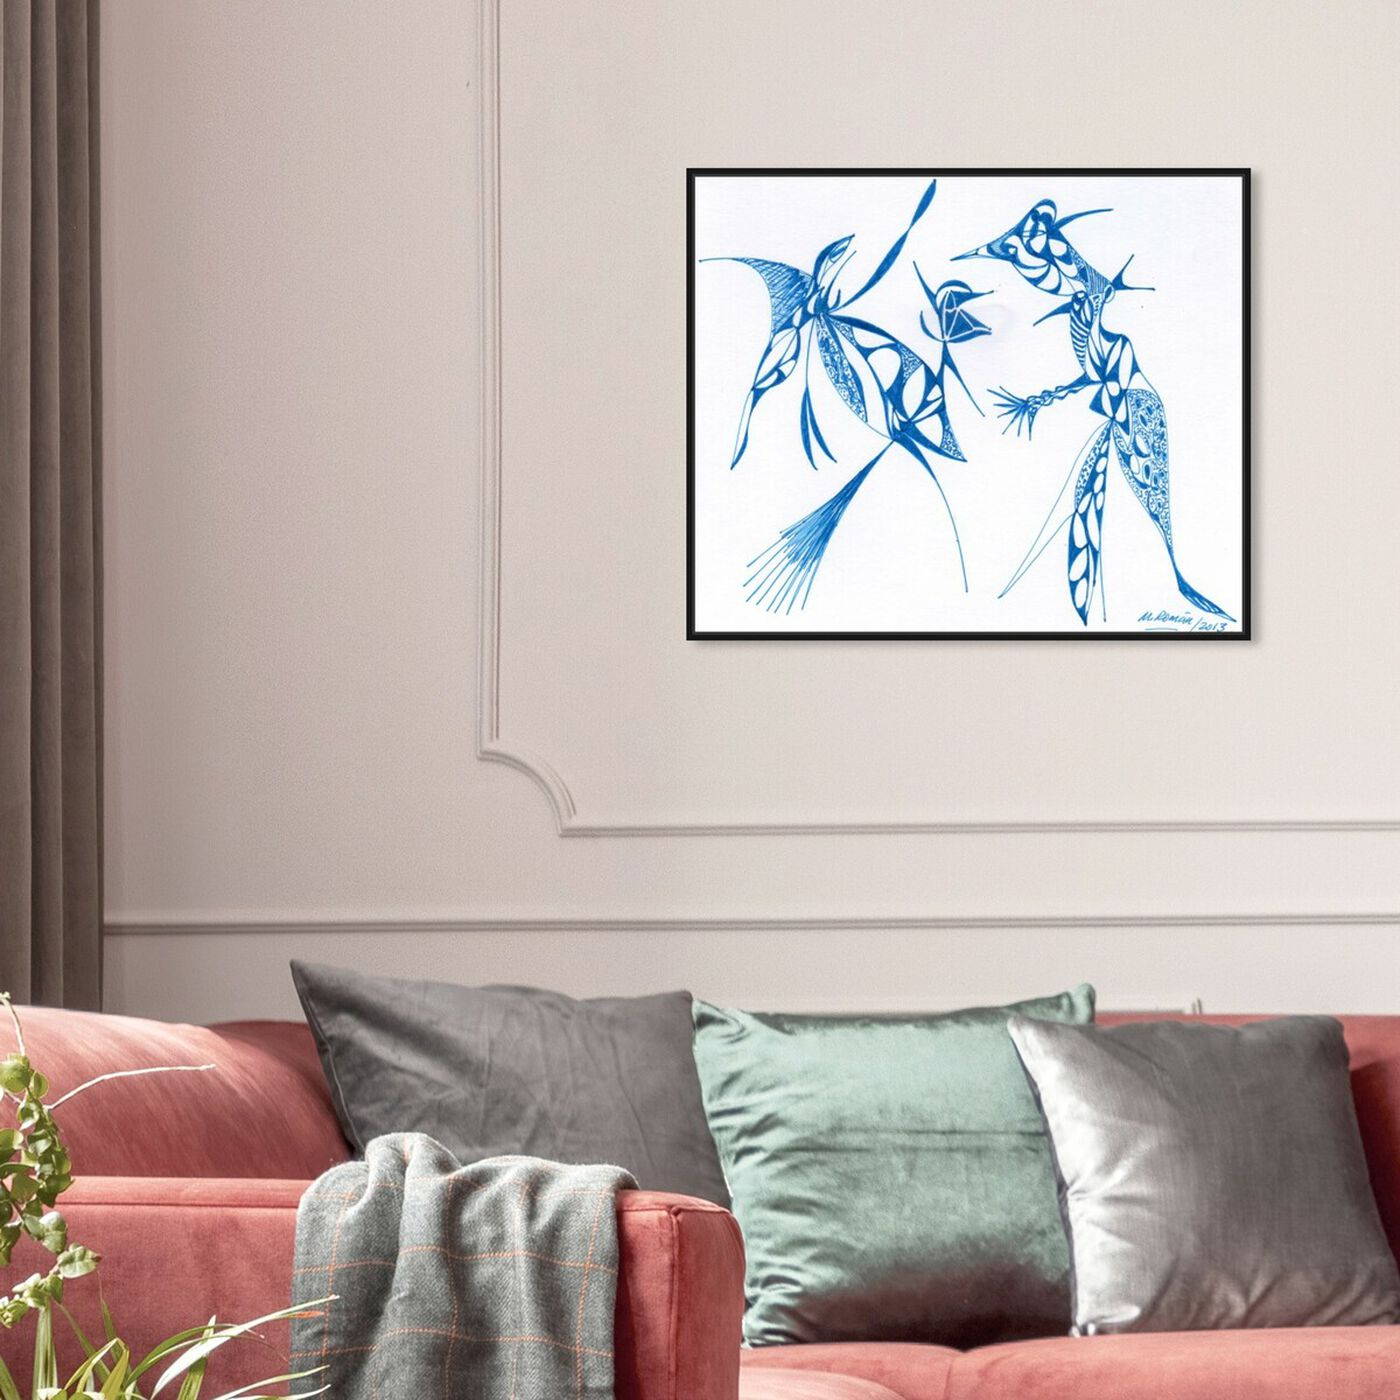 Hanging view of Dueling Herons featuring abstract and shapes art.